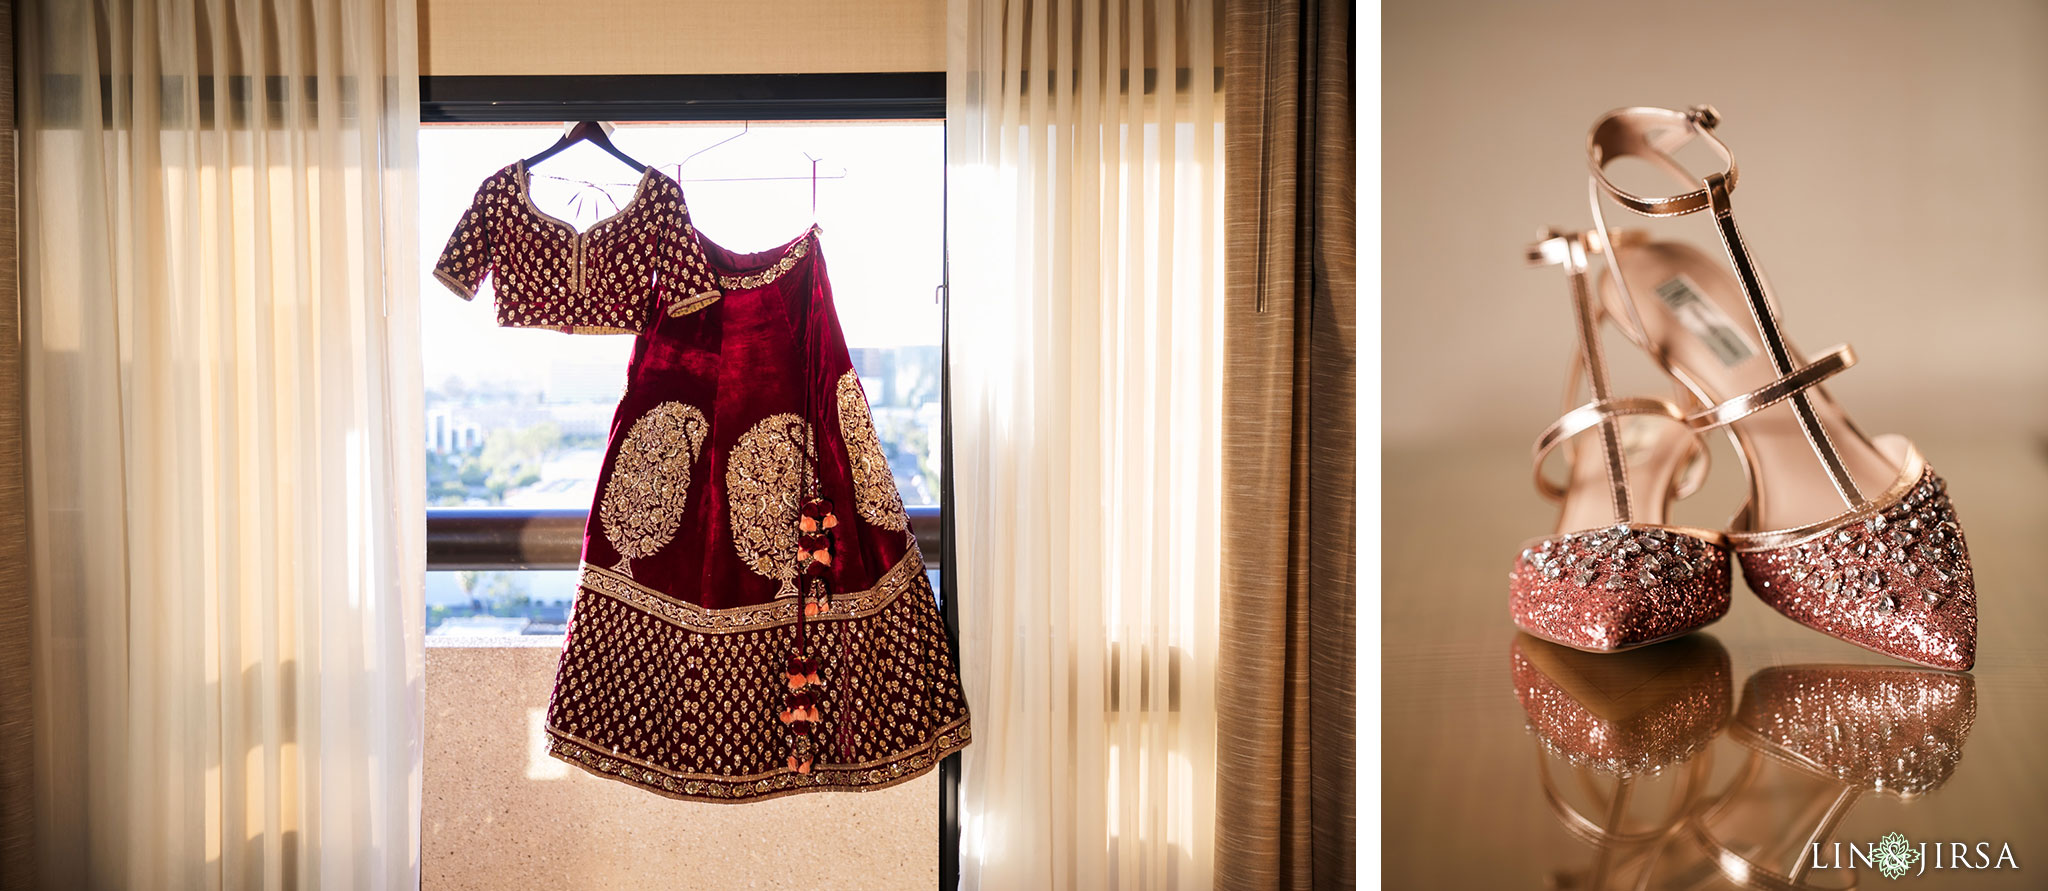 znc hotel irvine orange county indian wedding photograpy